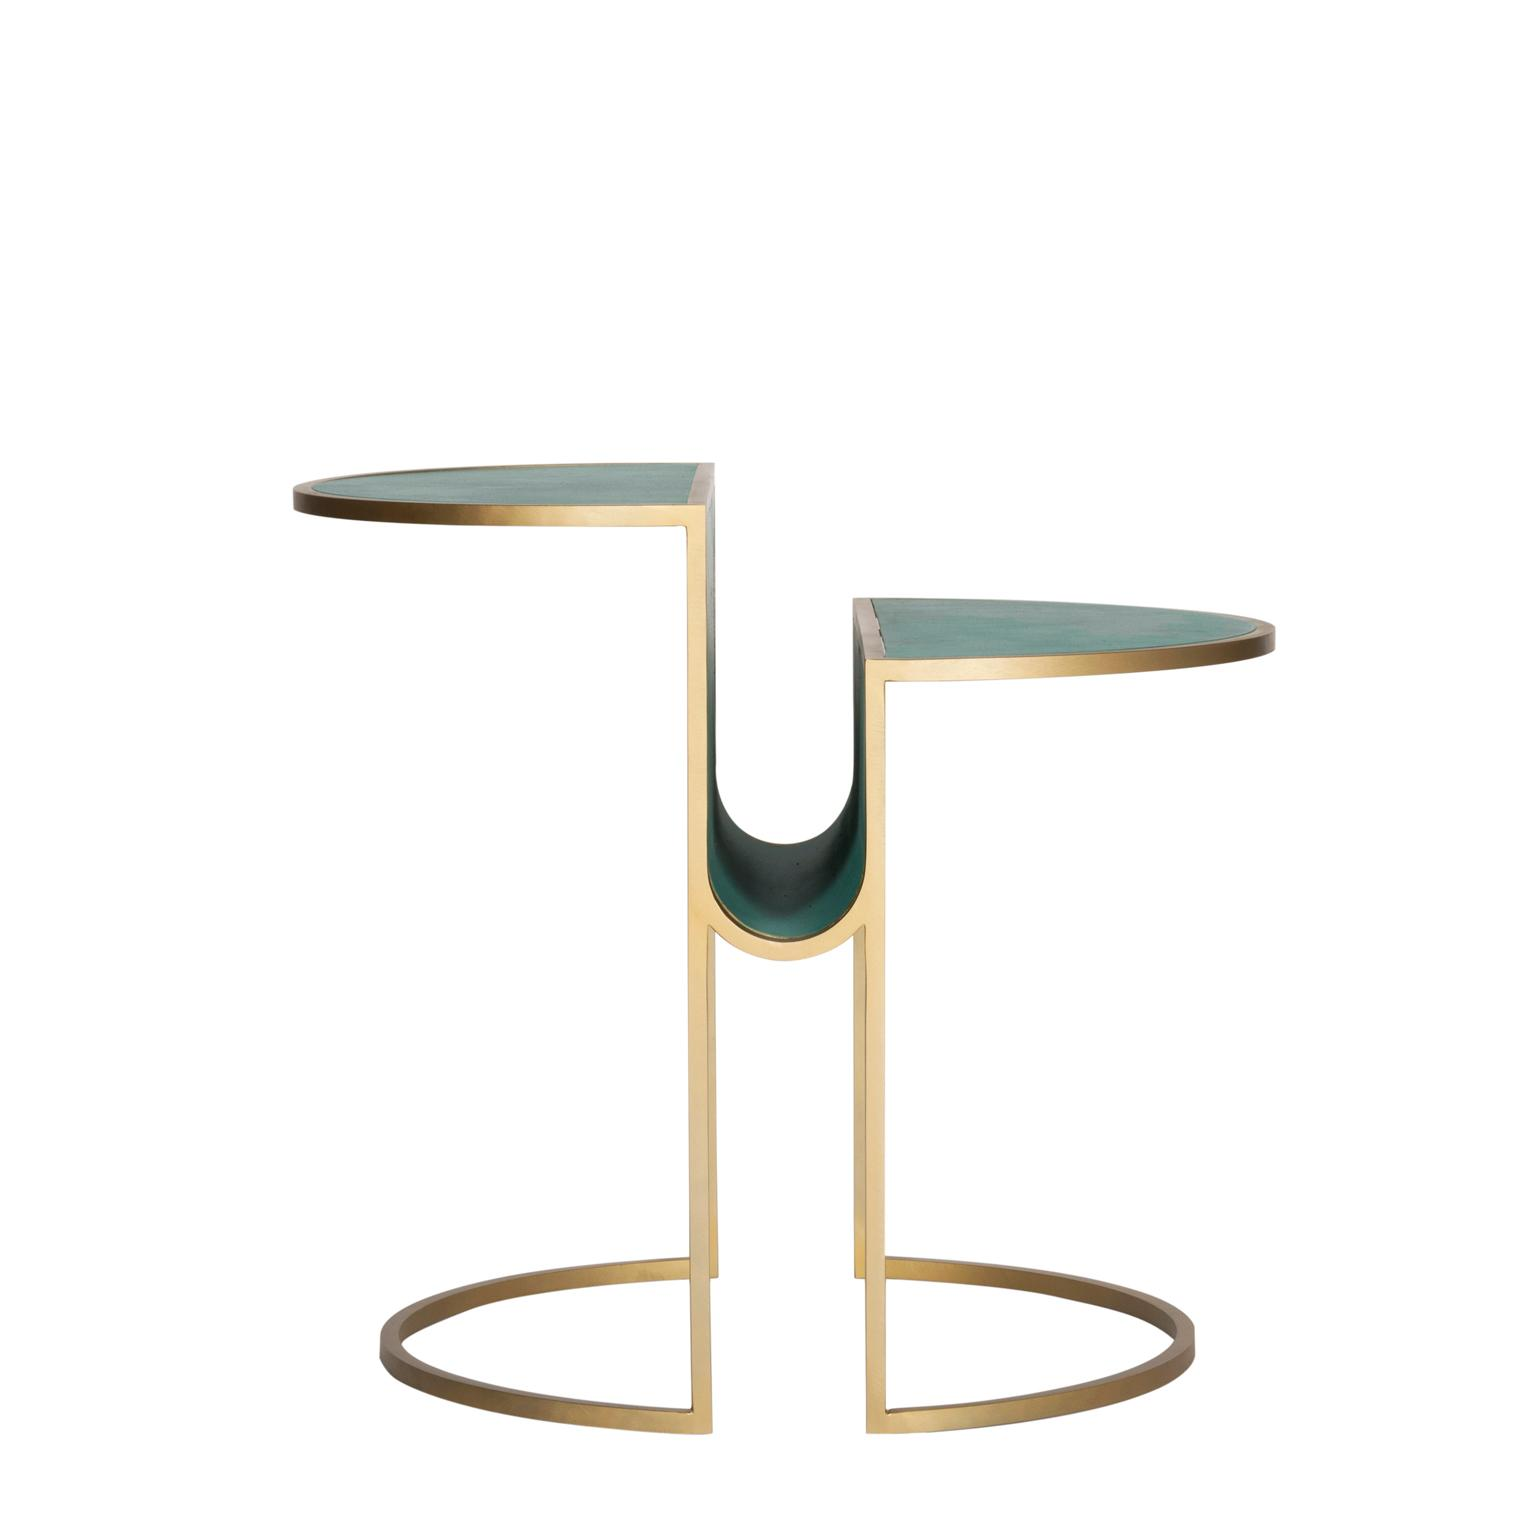 2019 Design Trends – The New Coffee and Side Tables by Lara Bohinc lara bohinc 2019 Design Trends – The New Coffee and Side Tables by Lara Bohinc The Orbit Tea table Bohinc Studio master